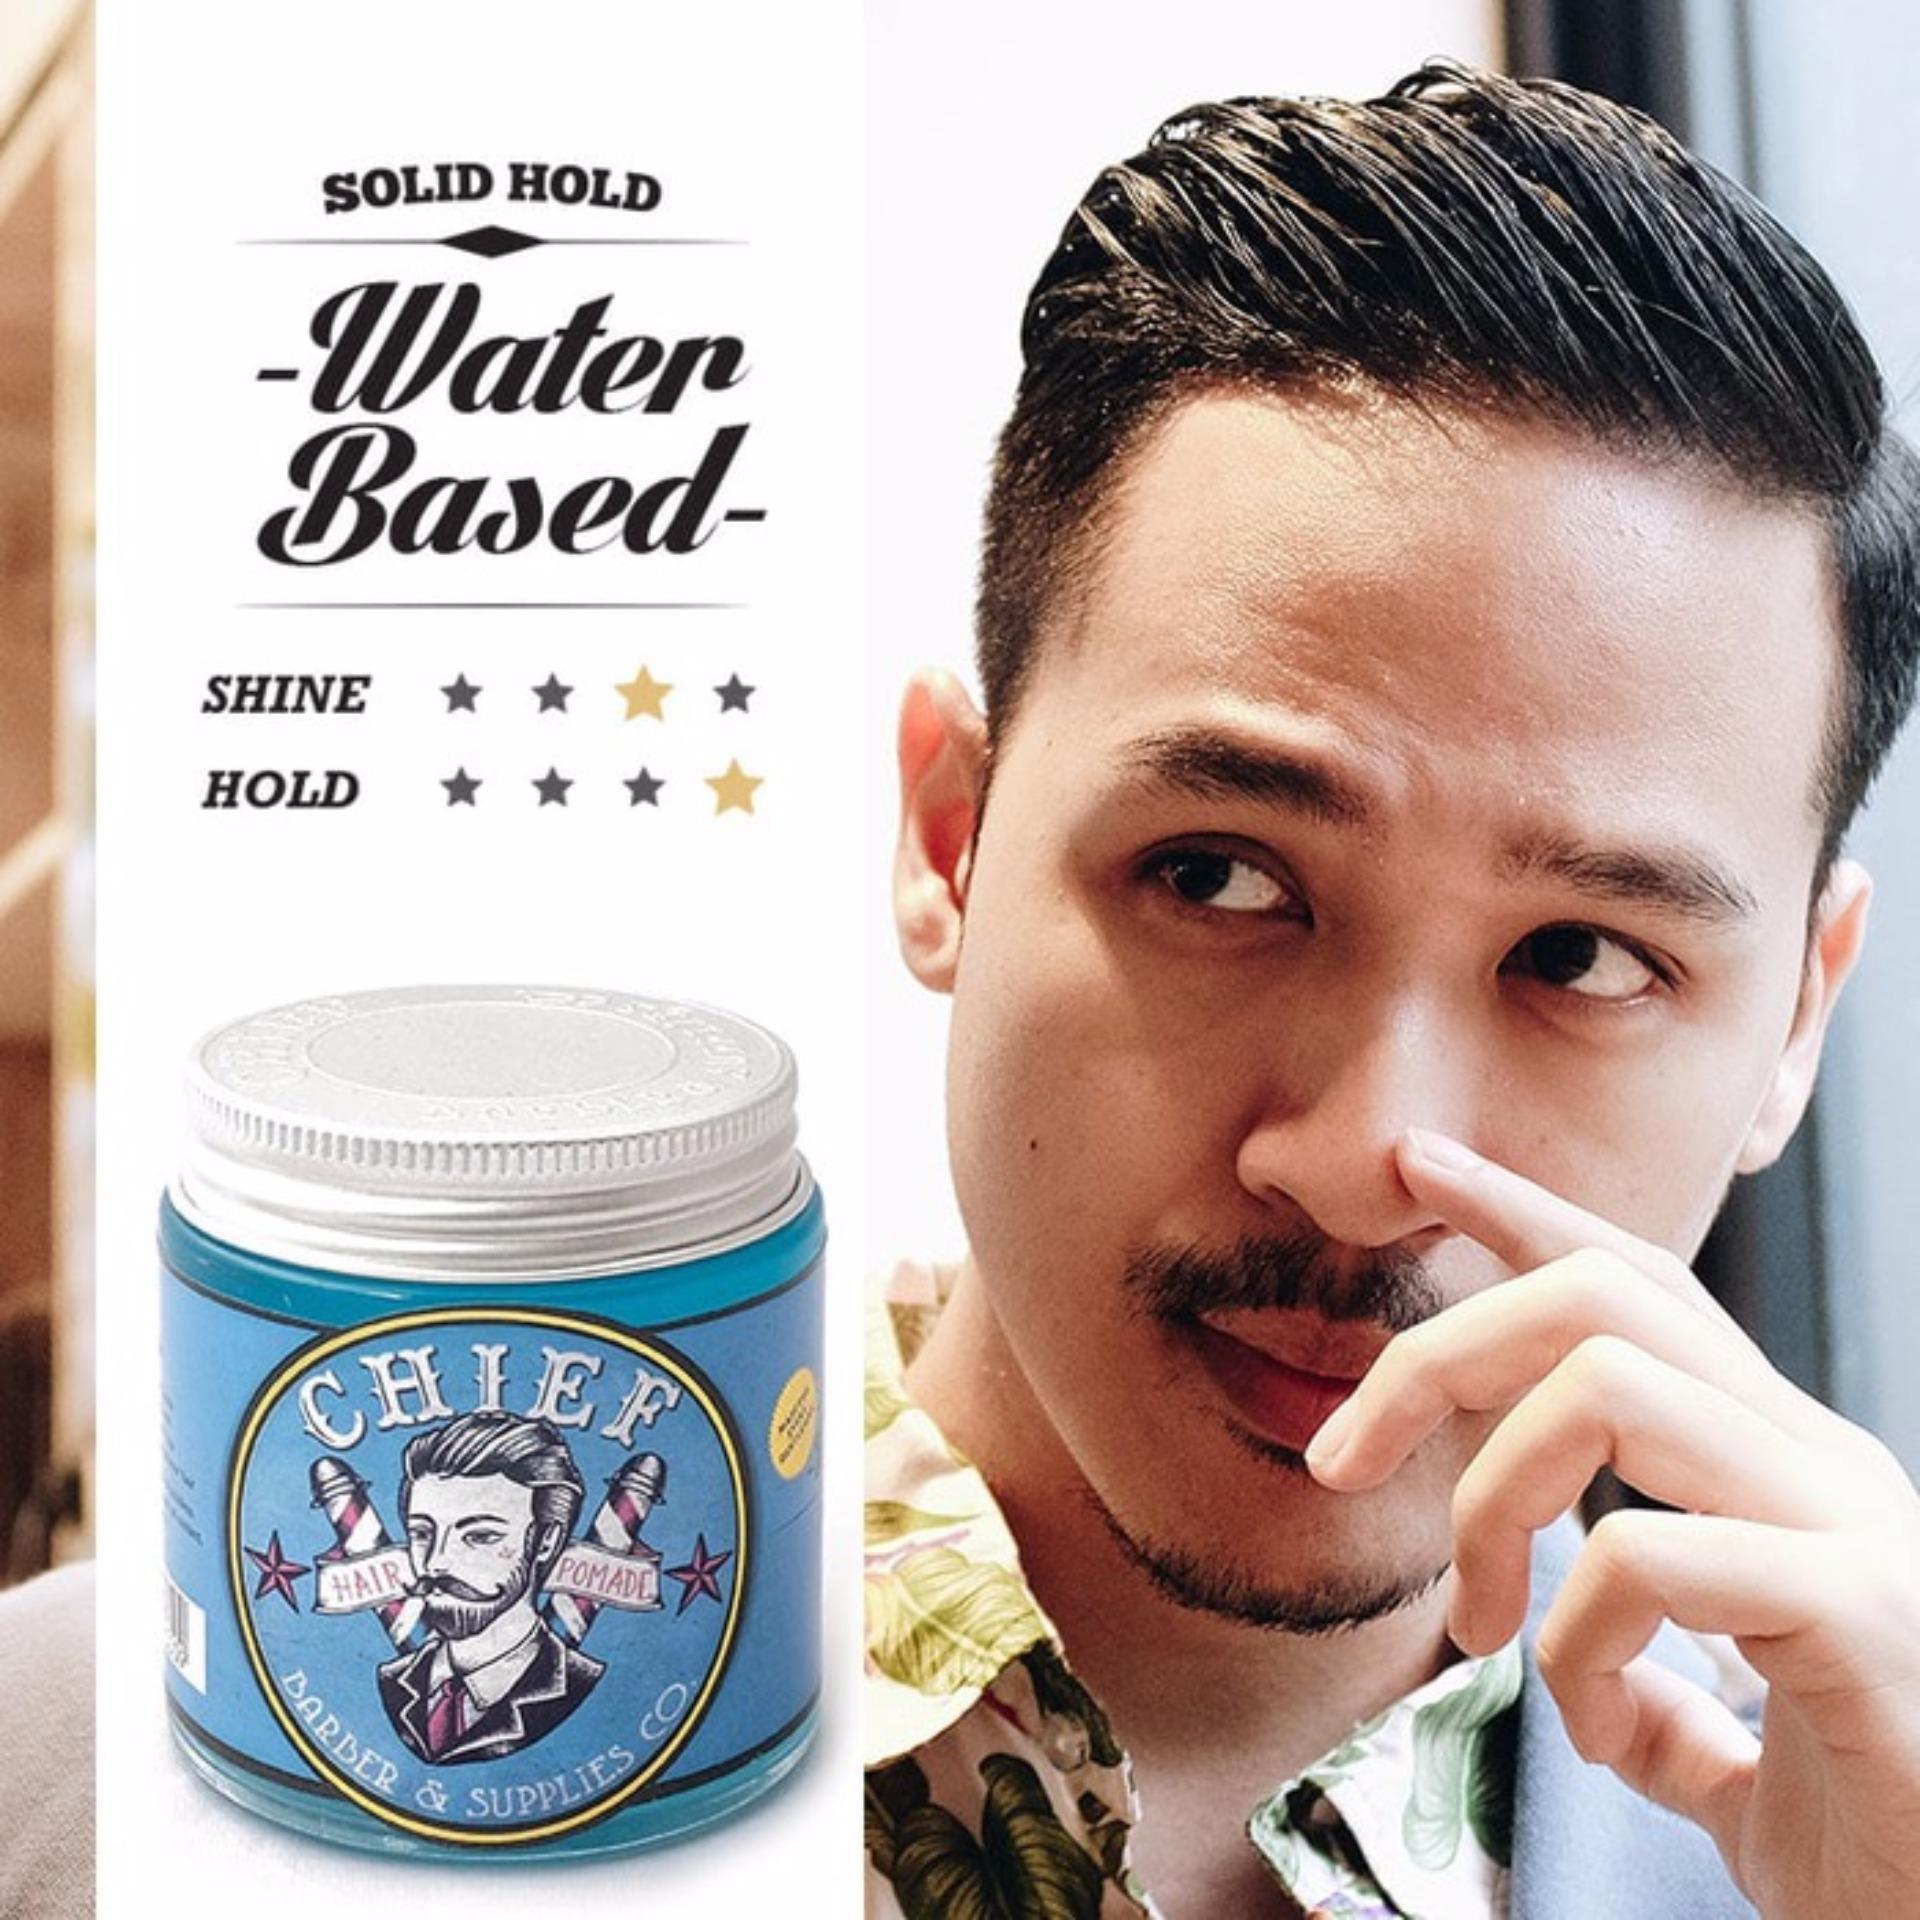 BELI..! CHIEF Pomade Blue Water Based 4.2oz Terlaris